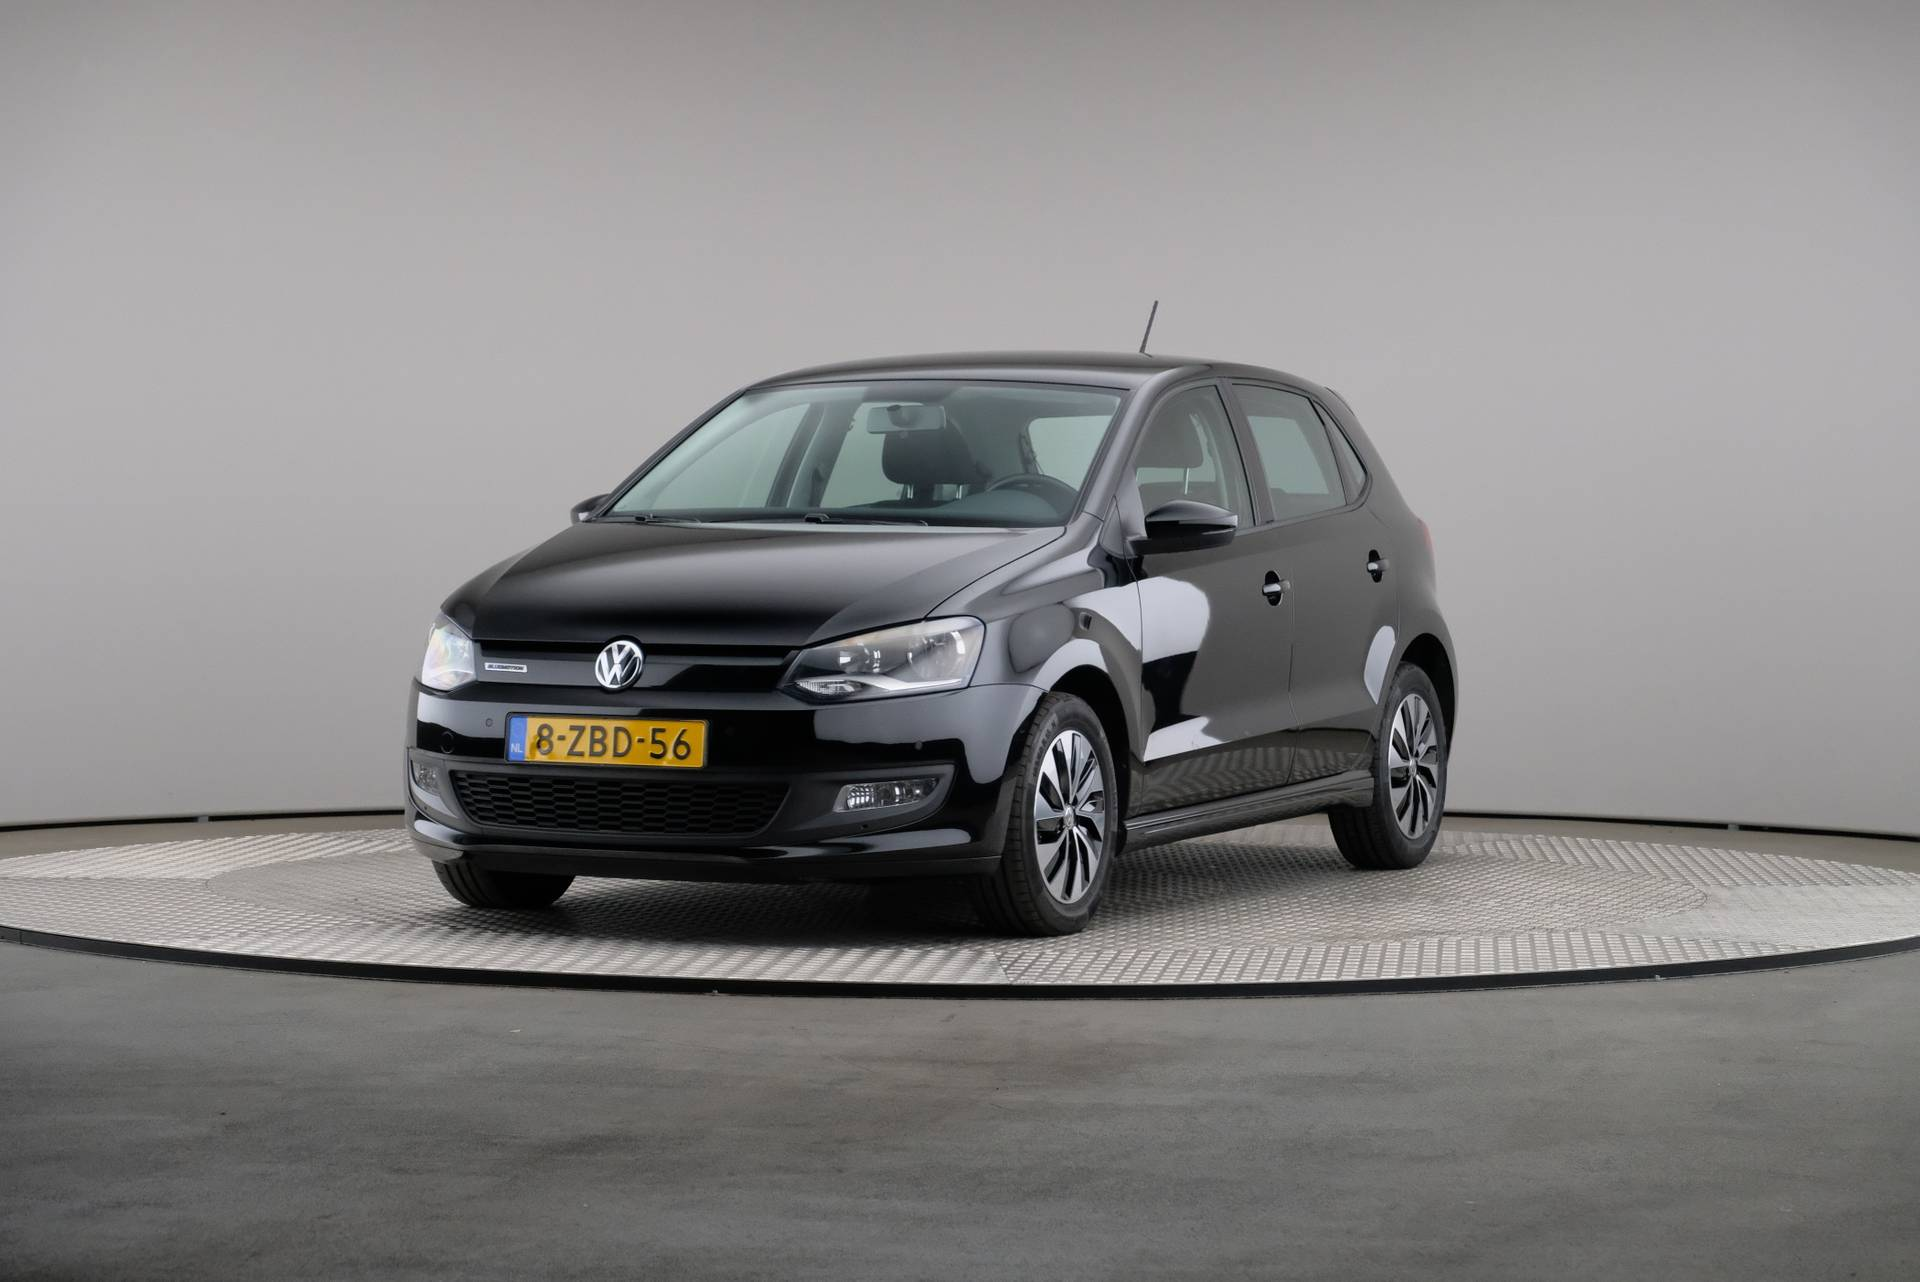 Volkswagen Polo 1.4 TDI BlueMotion, Executive, Airco, Navigatie, 360-image35